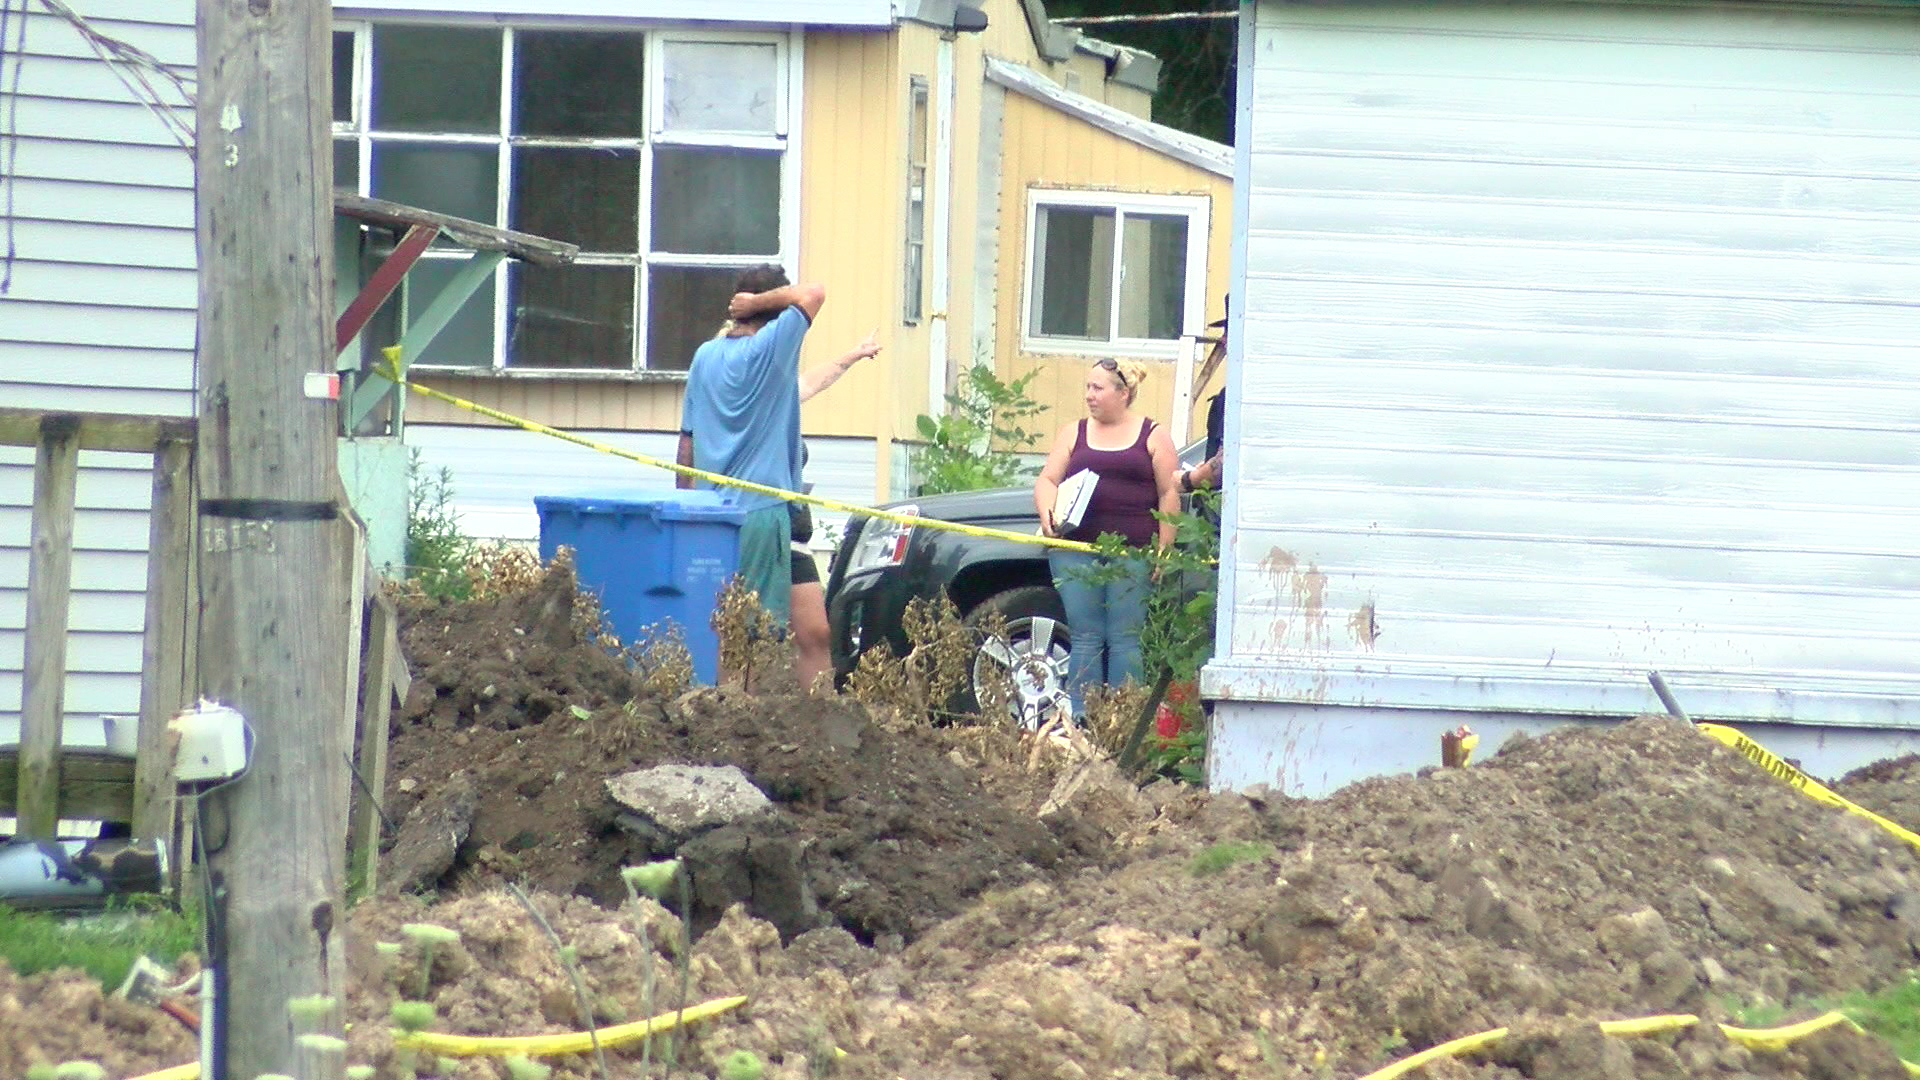 Management demands rent at mobile home park in Lyons weeks after power was turned off